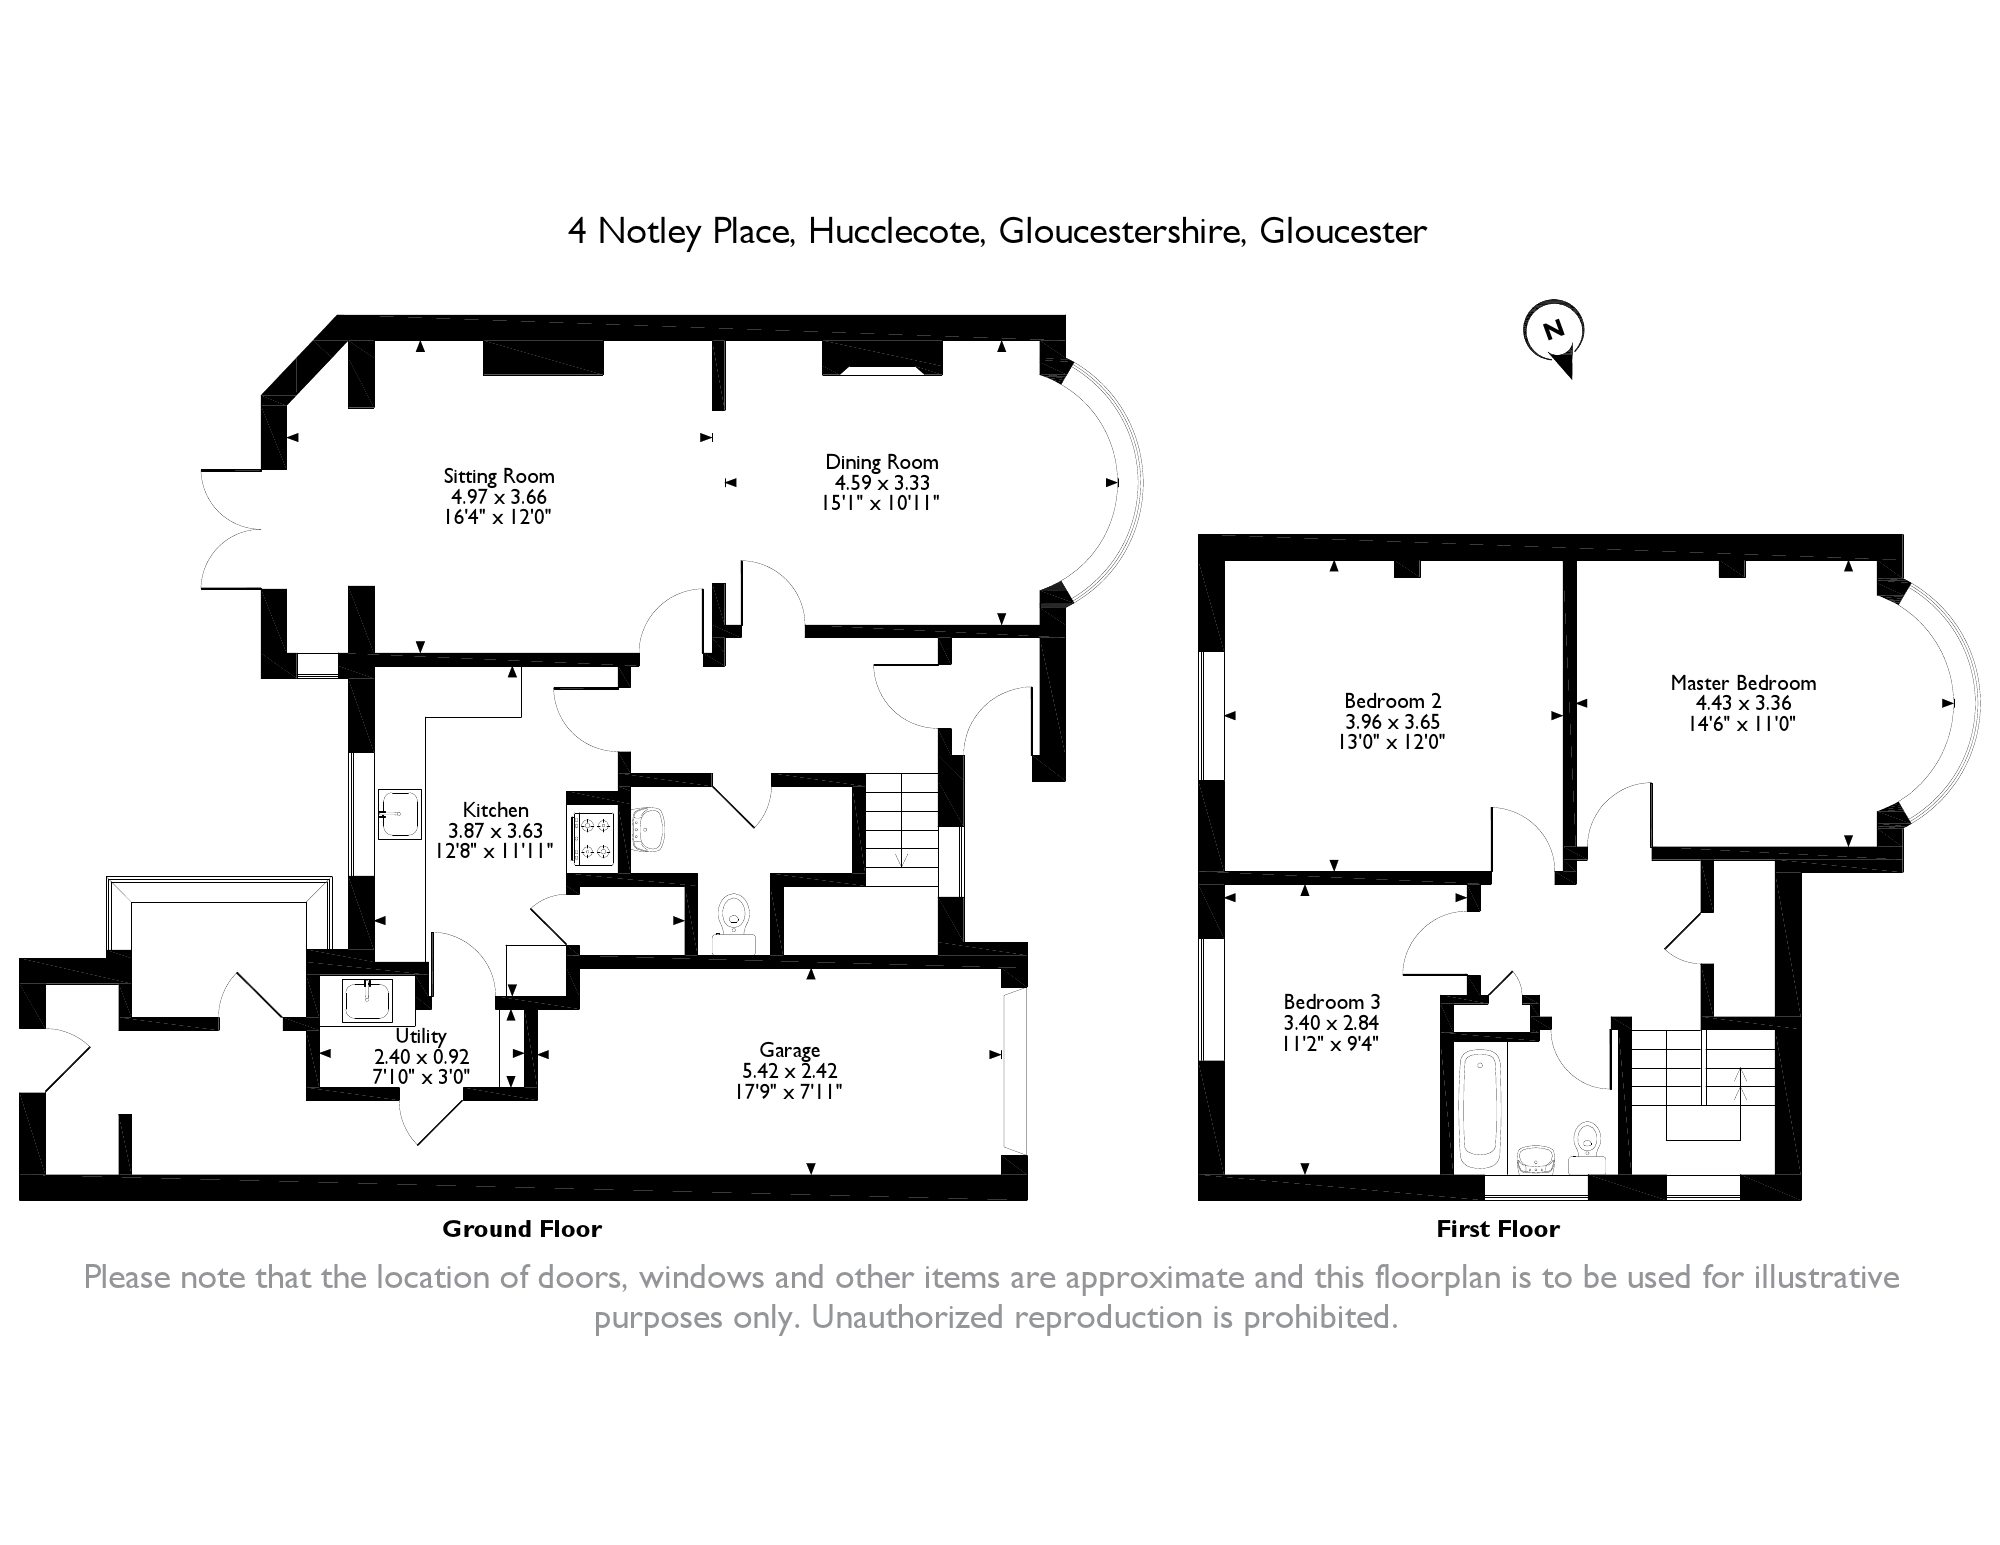 Notley Place, Gloucester, Gloucestershire floor plan